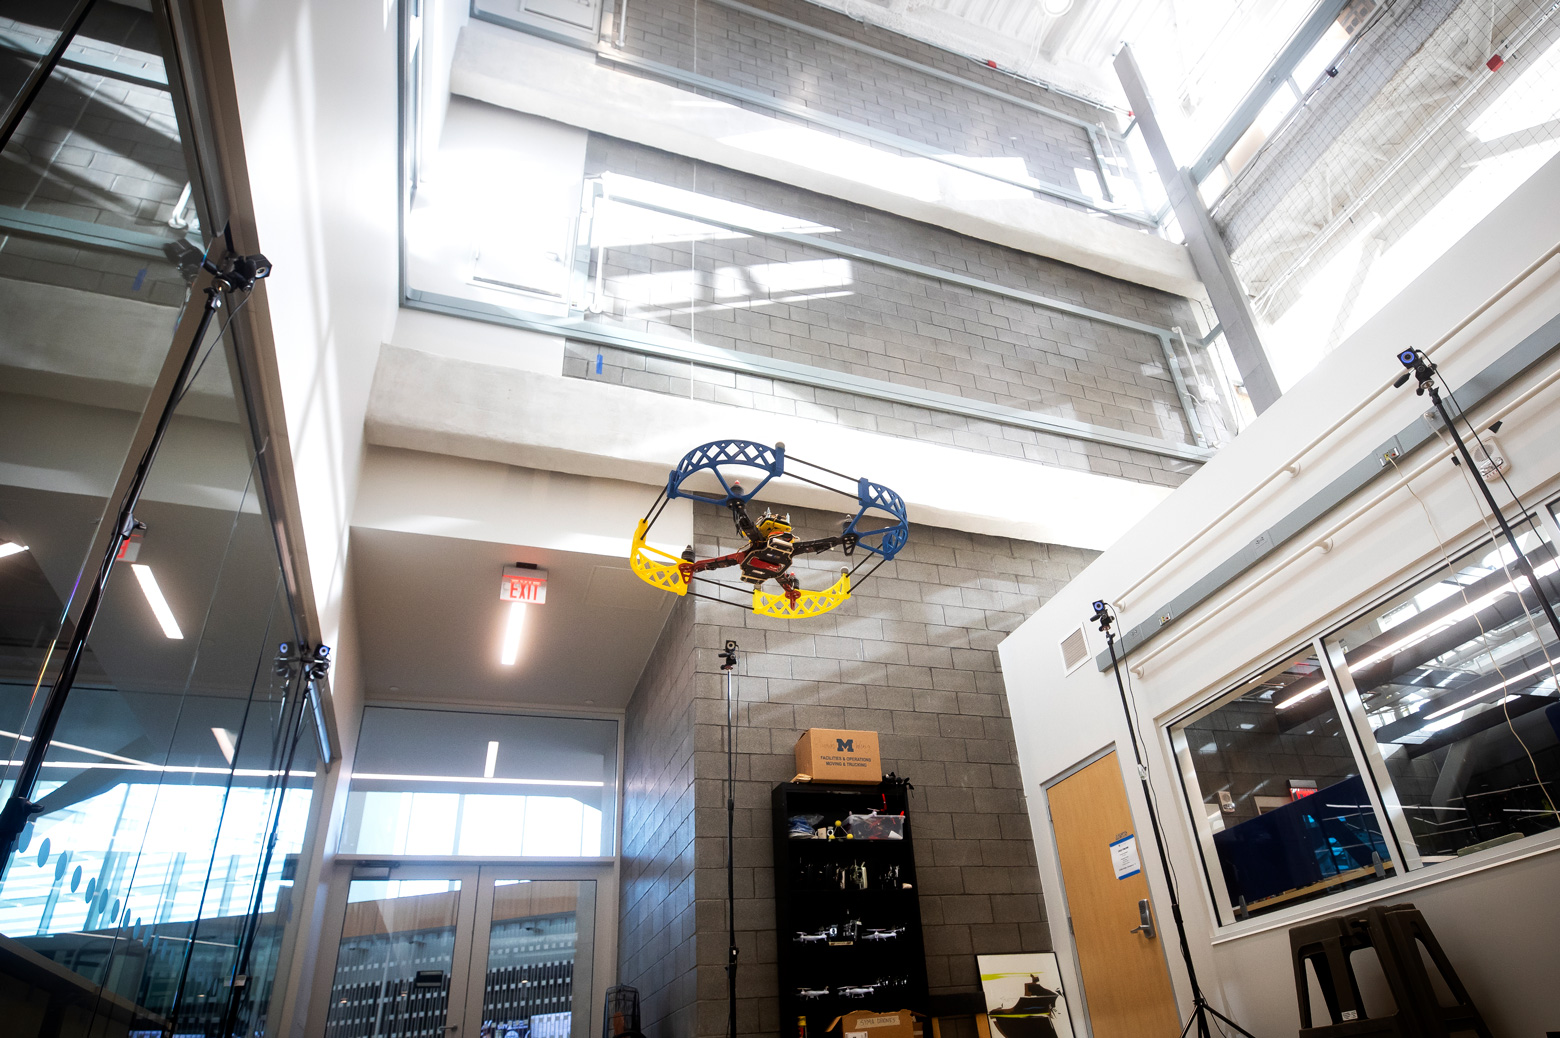 A drone in tested in the Fly Lab in the Ford Robotics Building.